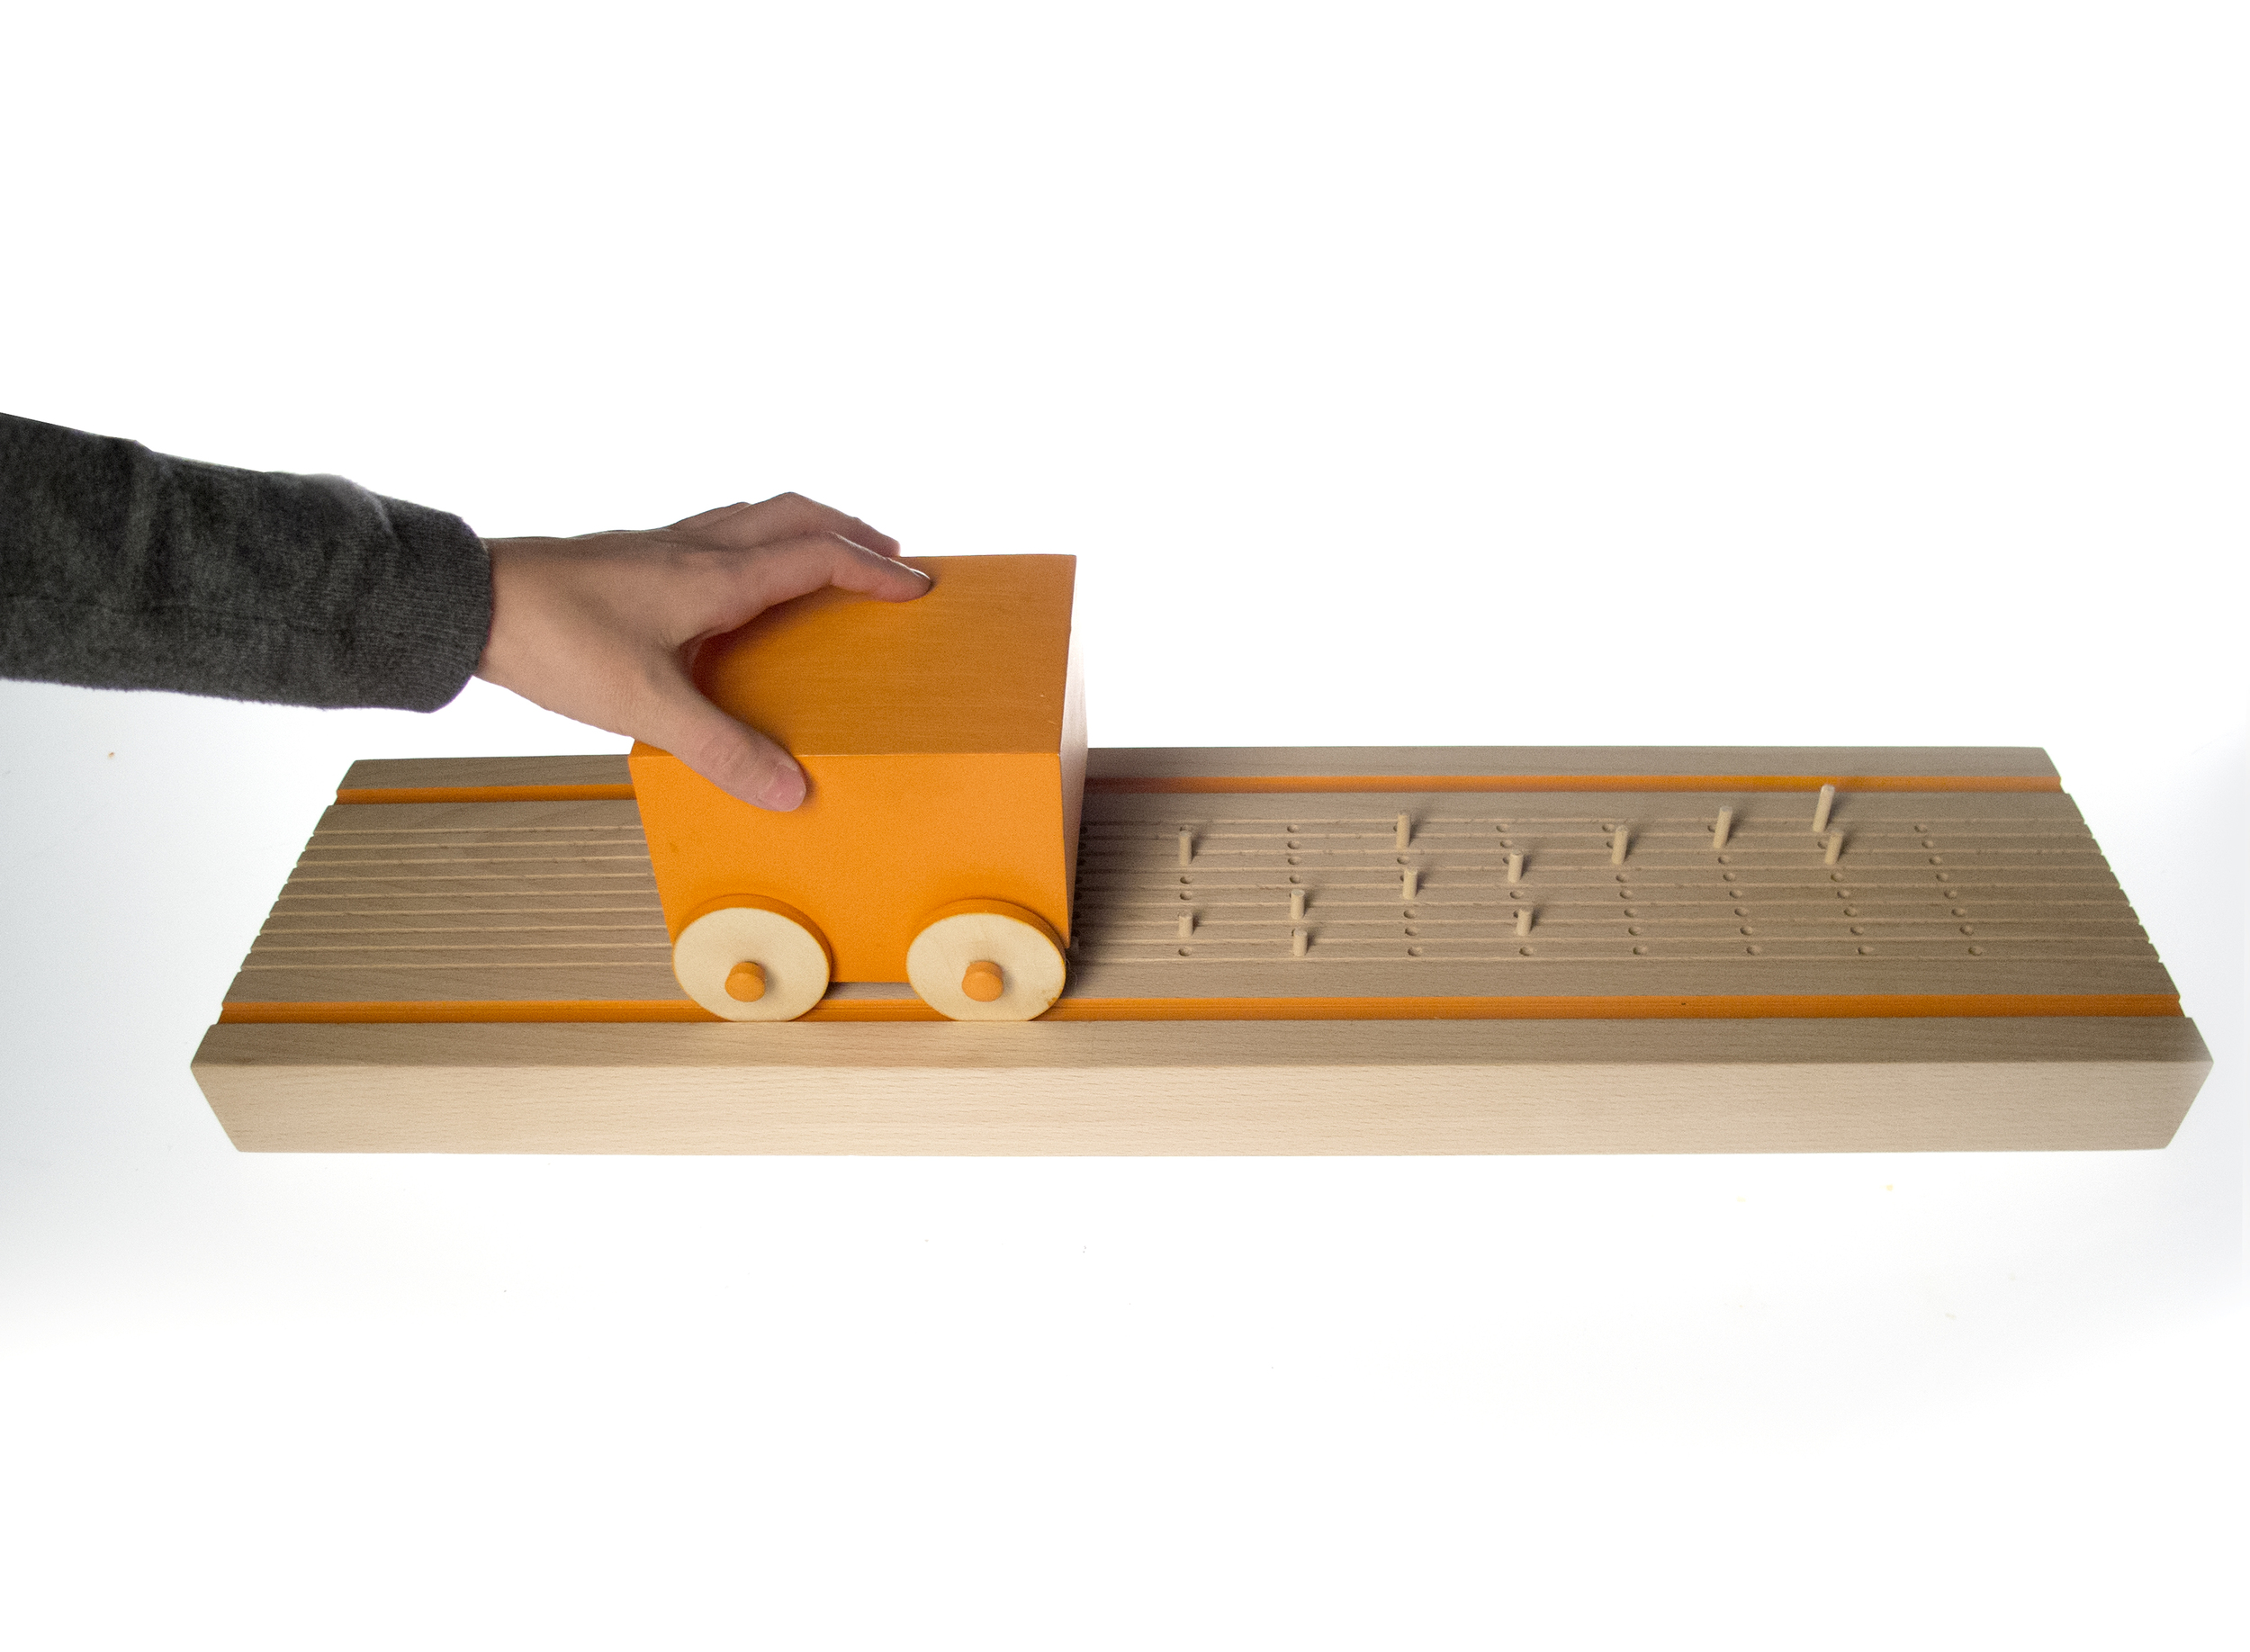 Push car along track to play composition